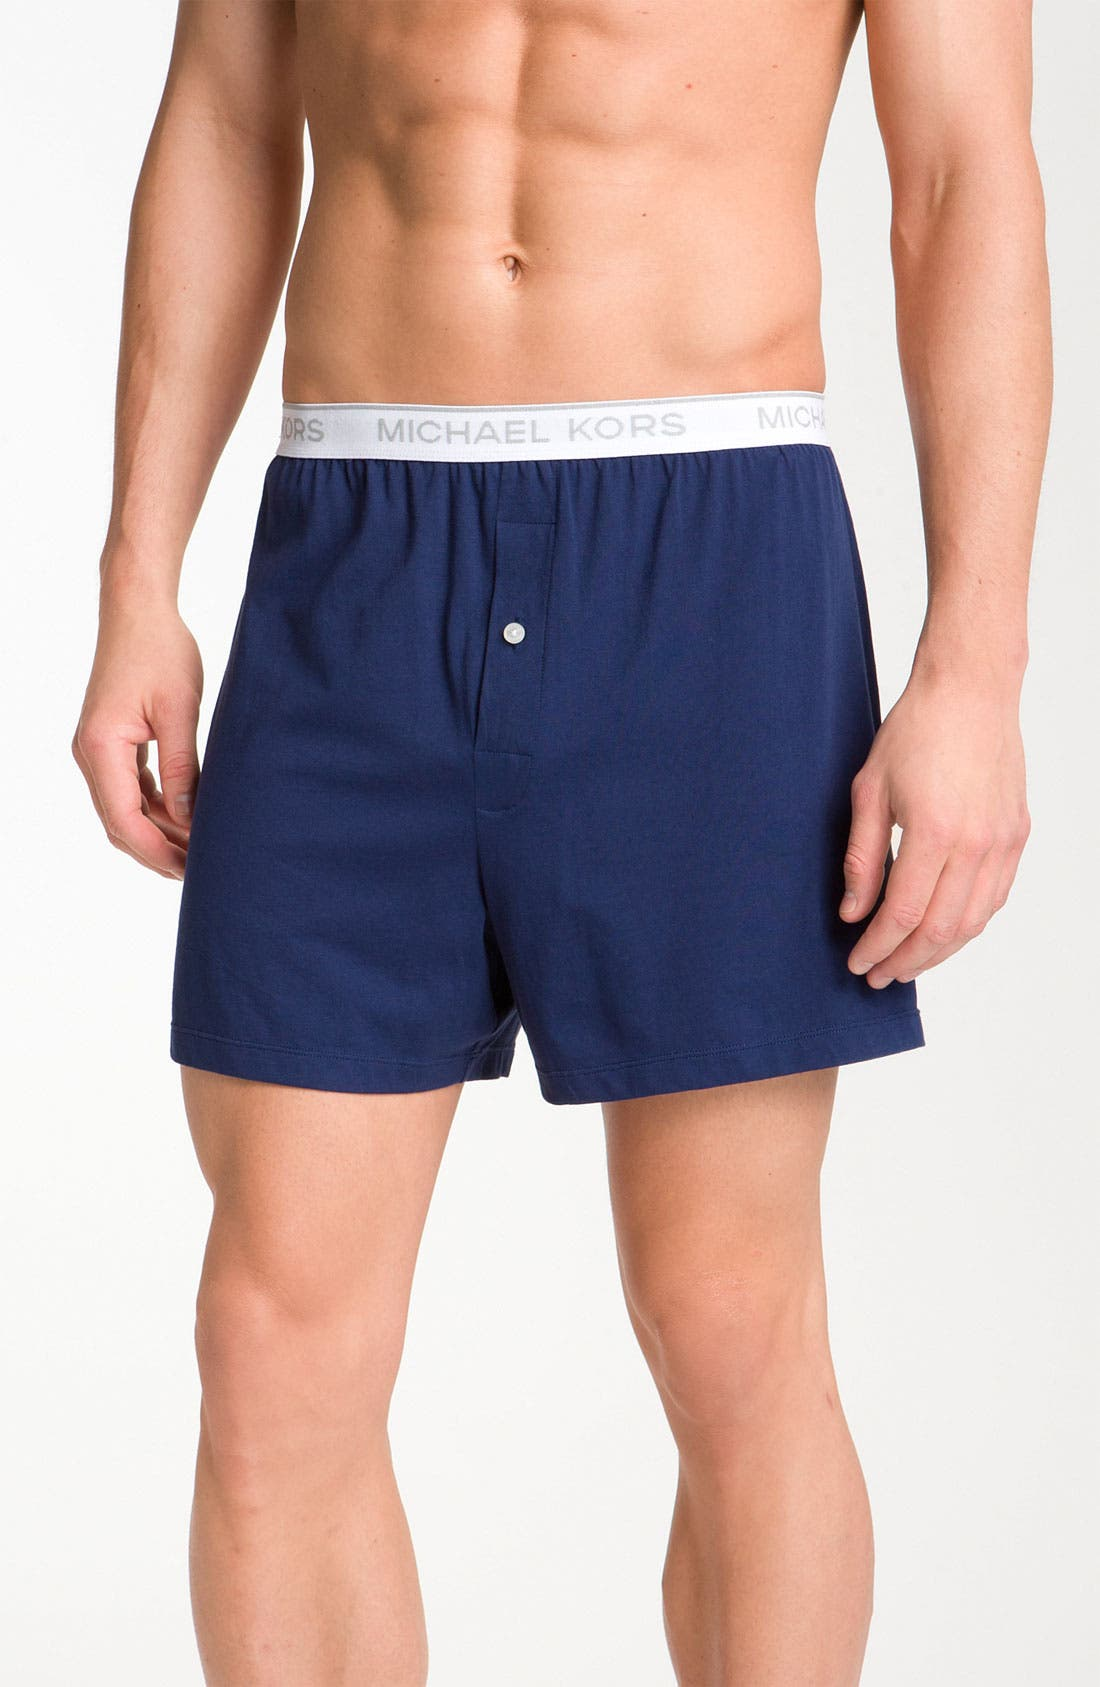 Alternate Image 1 Selected - Michael Kors Knit Boxers (2-Pack)